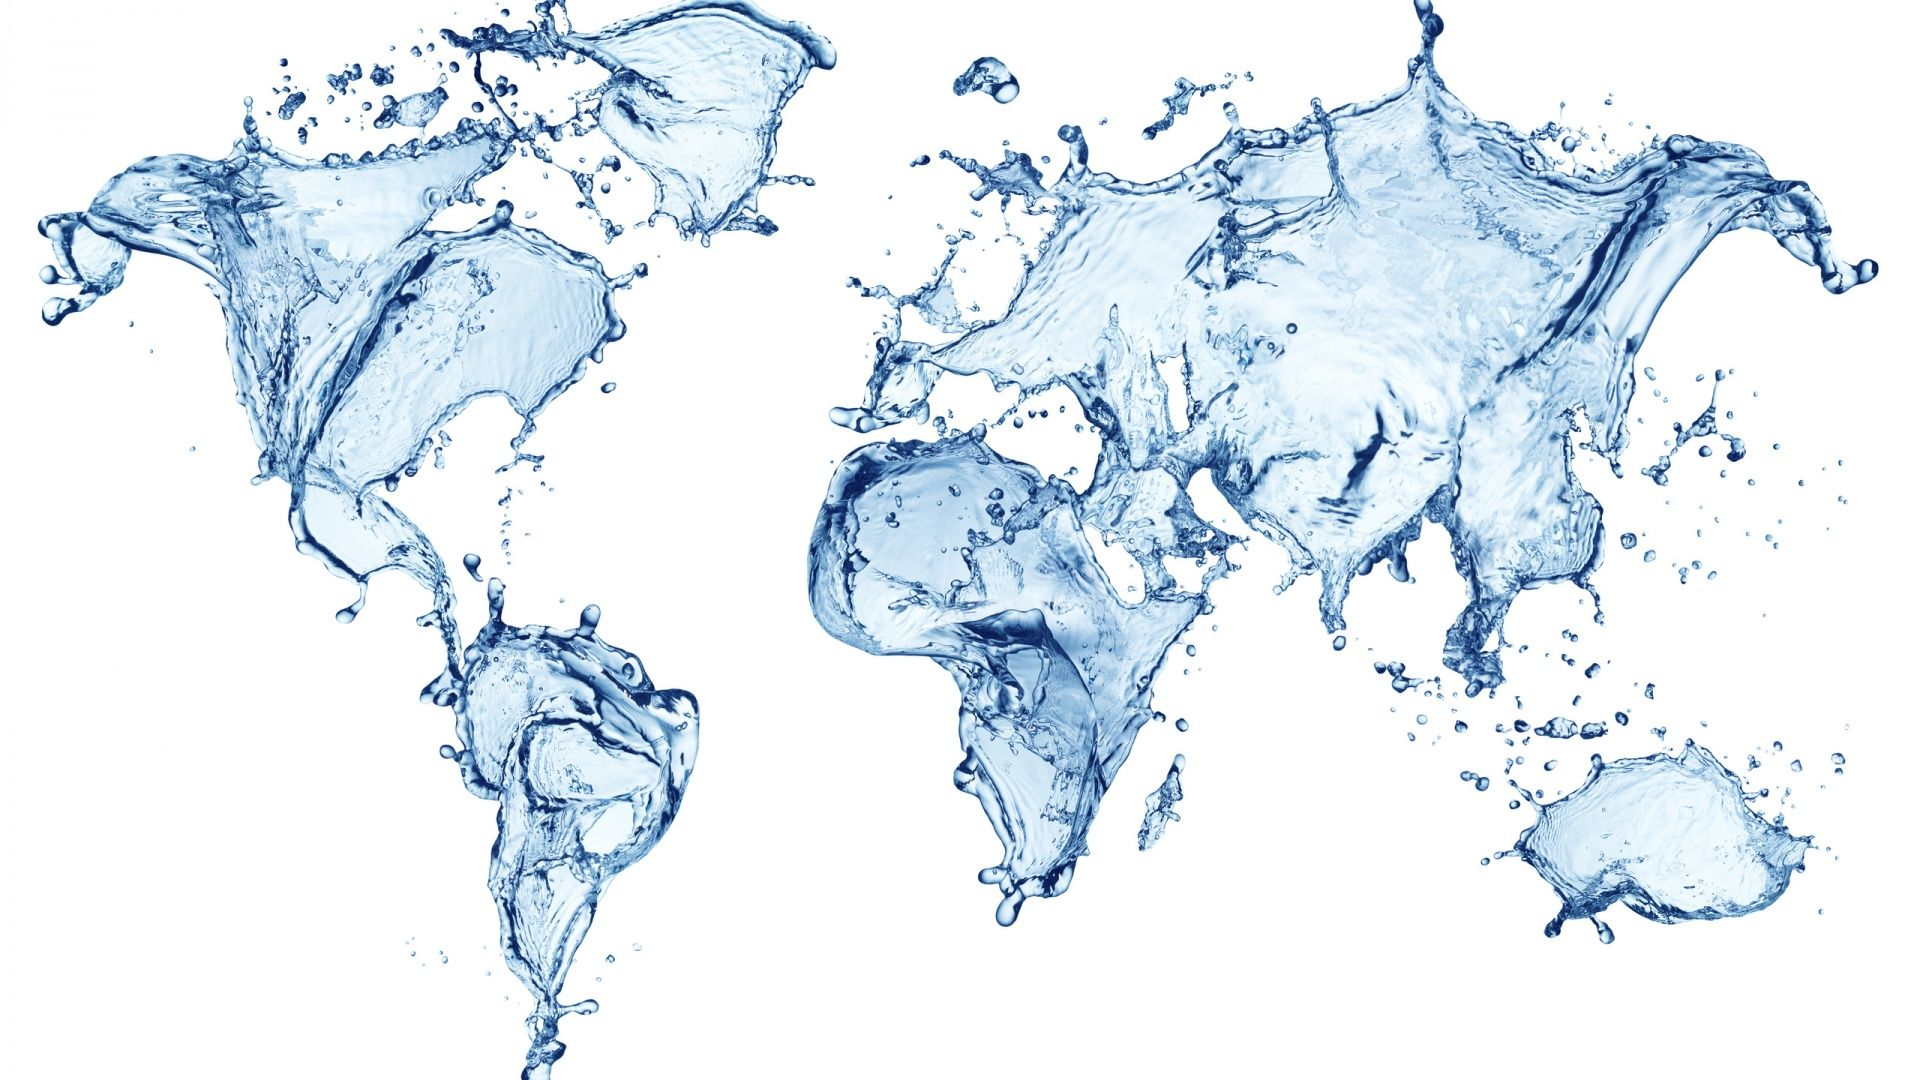 Water world map 19201080 high definition wallpaper daily water world map 19201080 high definition wallpaper daily screens id 7207 gumiabroncs Choice Image